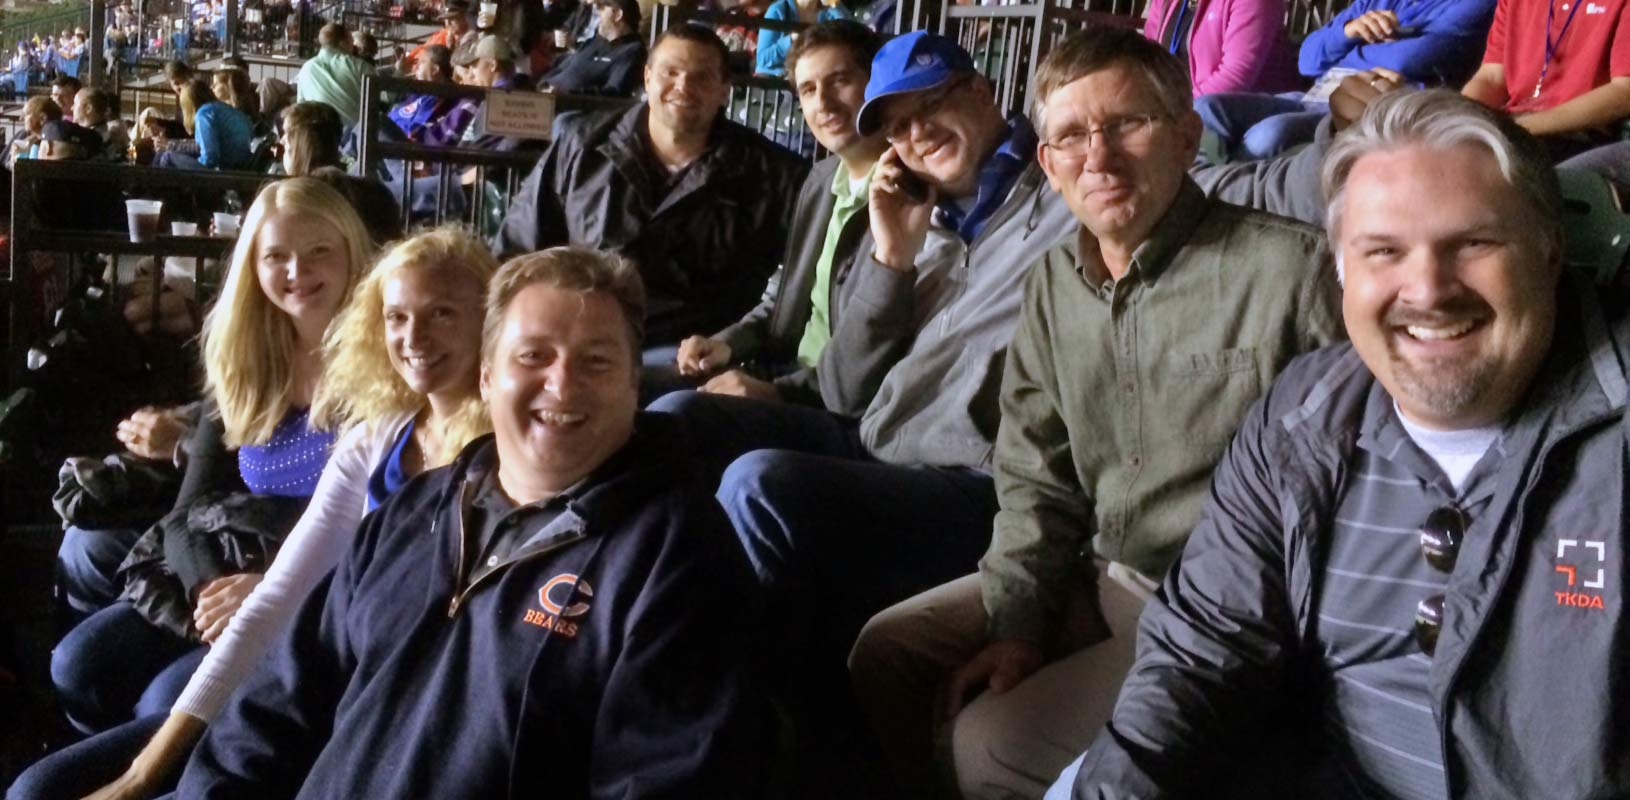 TKDA employees at baseball game